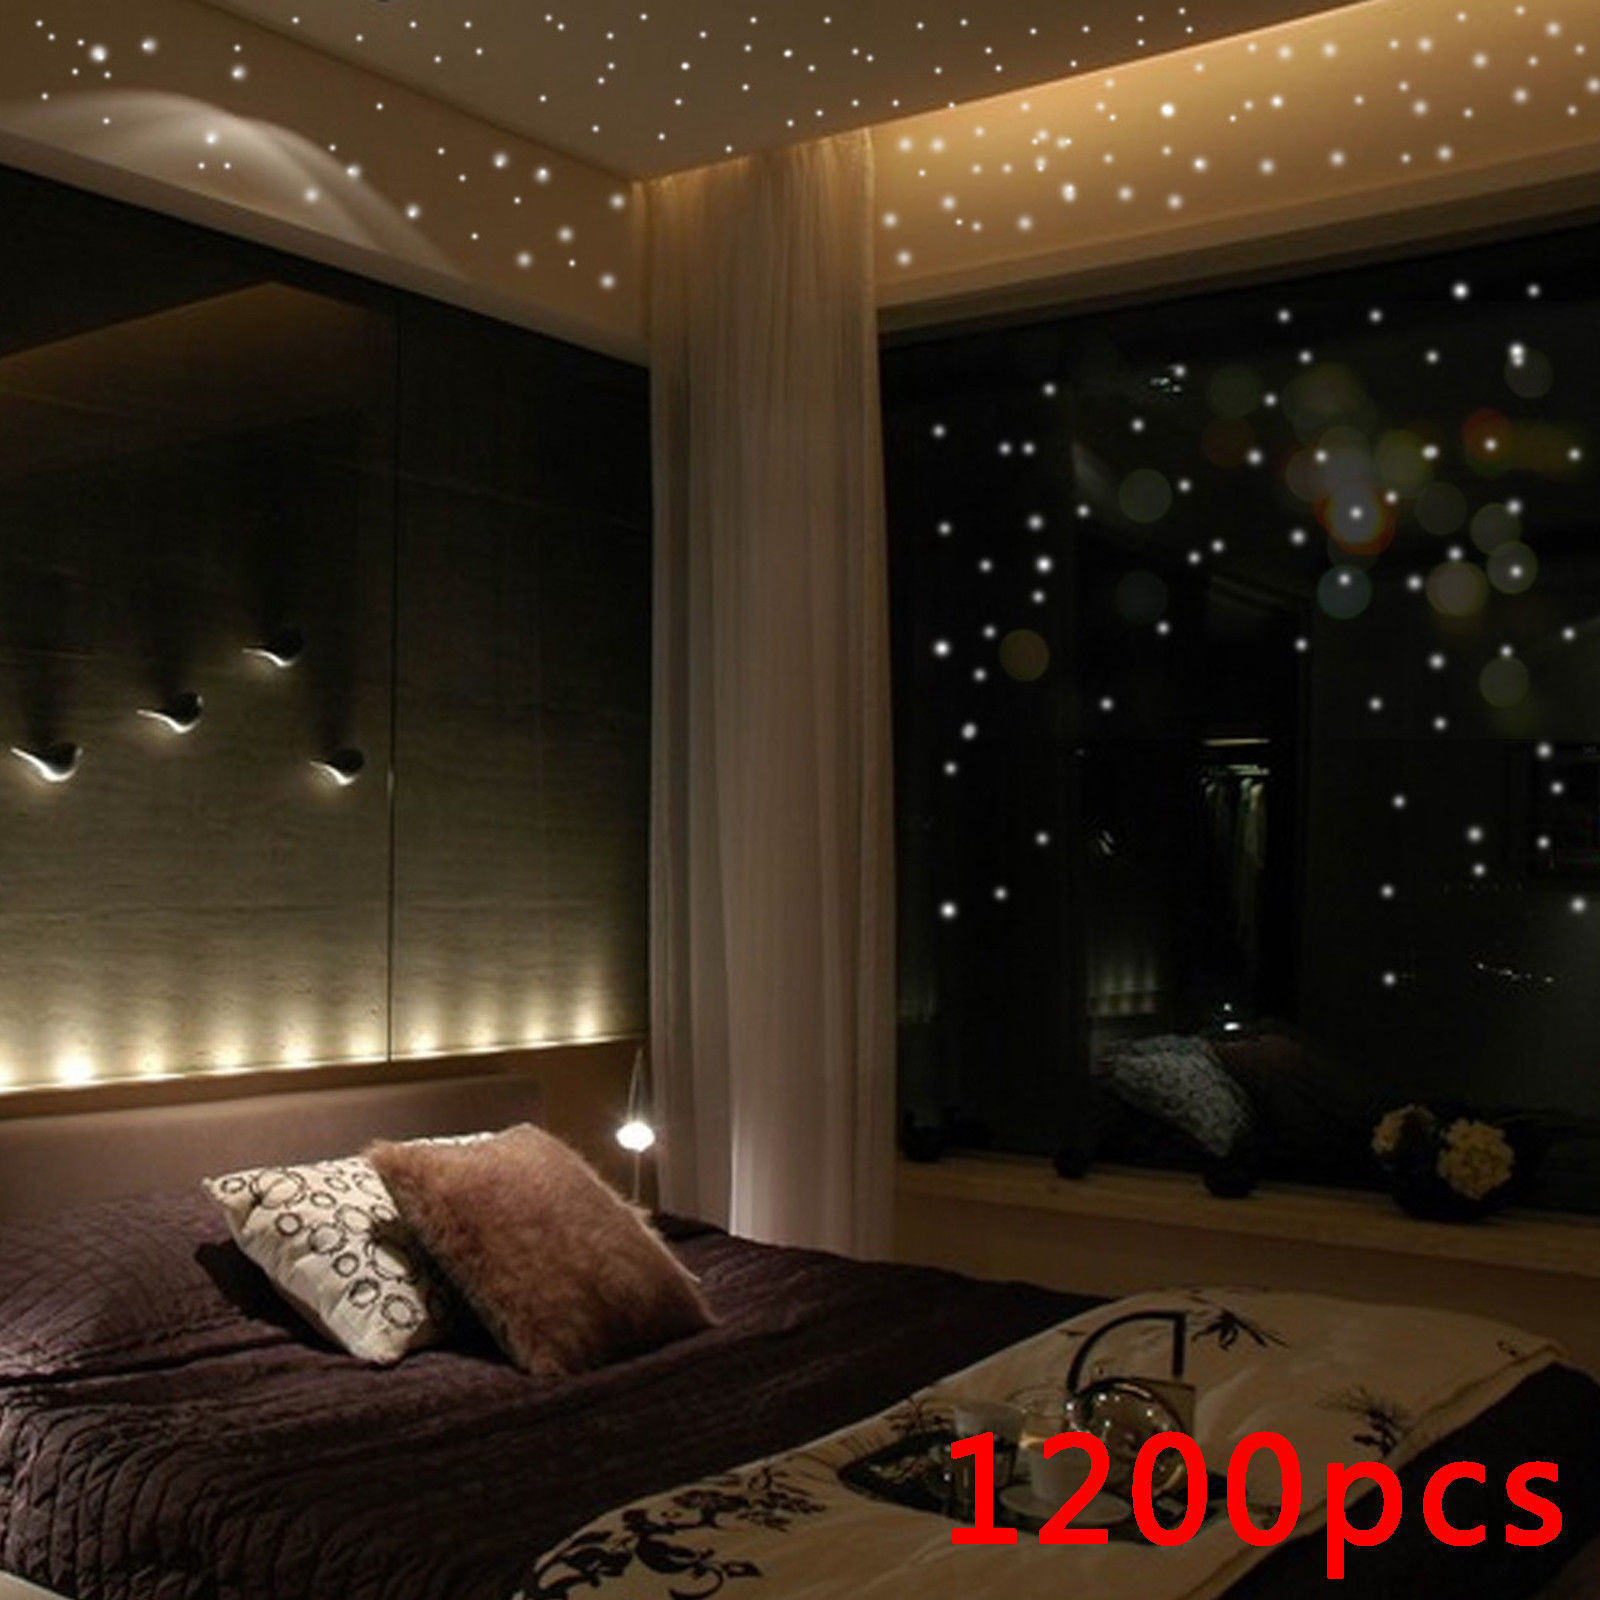 3.89 GBP - 1200P Wall Stickers Glow In The Dark Star Round Dot ...